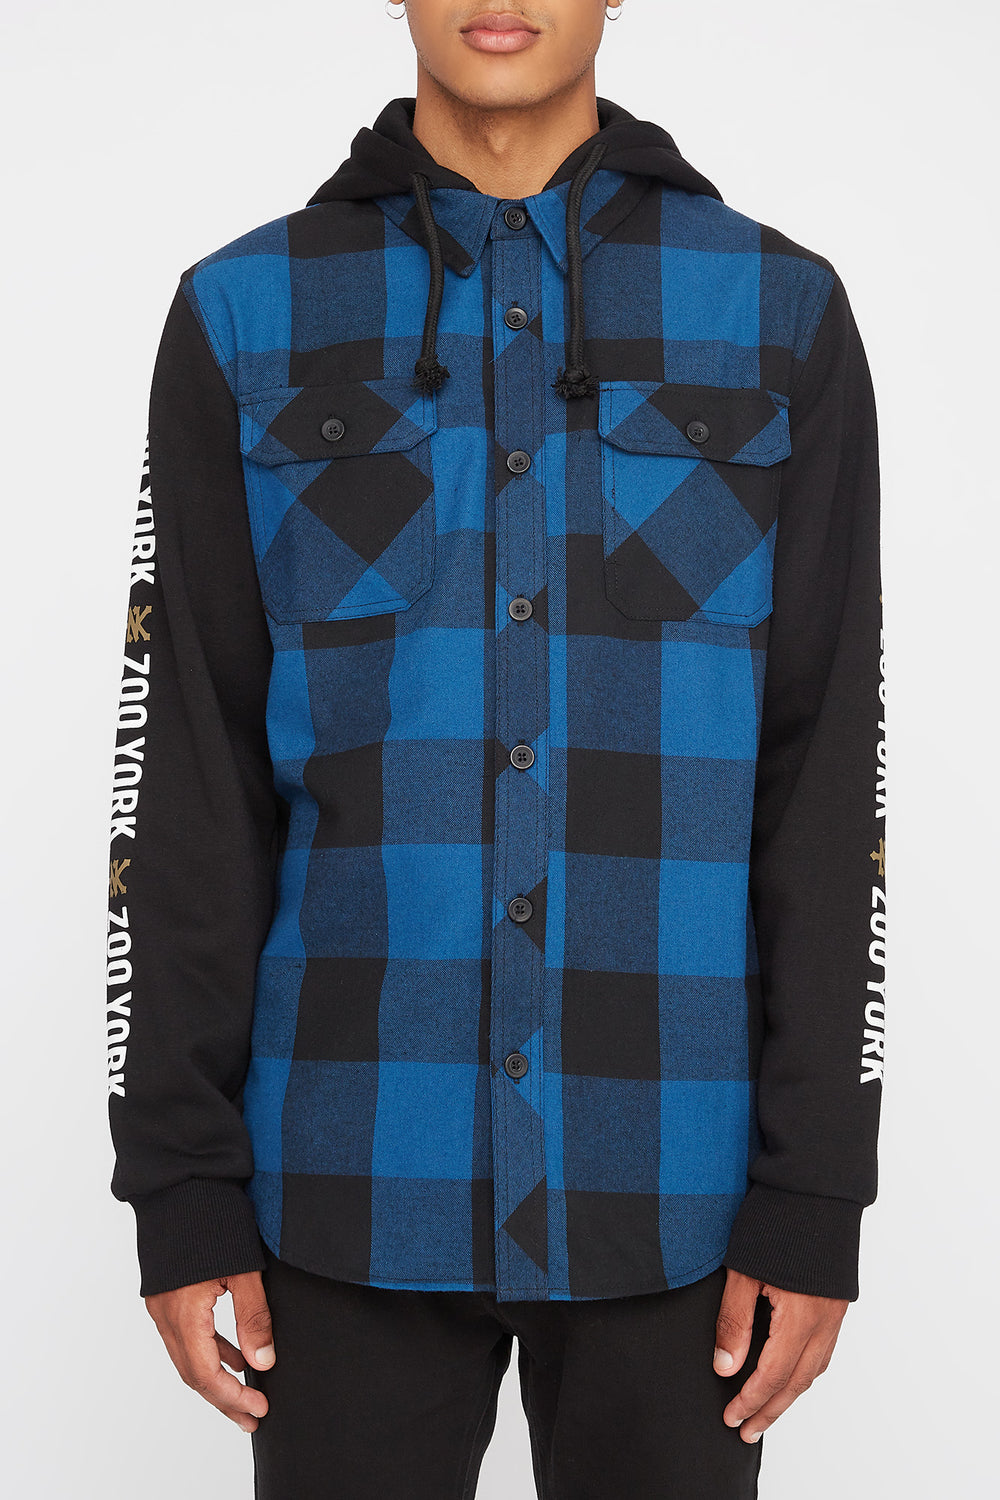 Zoo York Mens Flannel Hoodie Blue